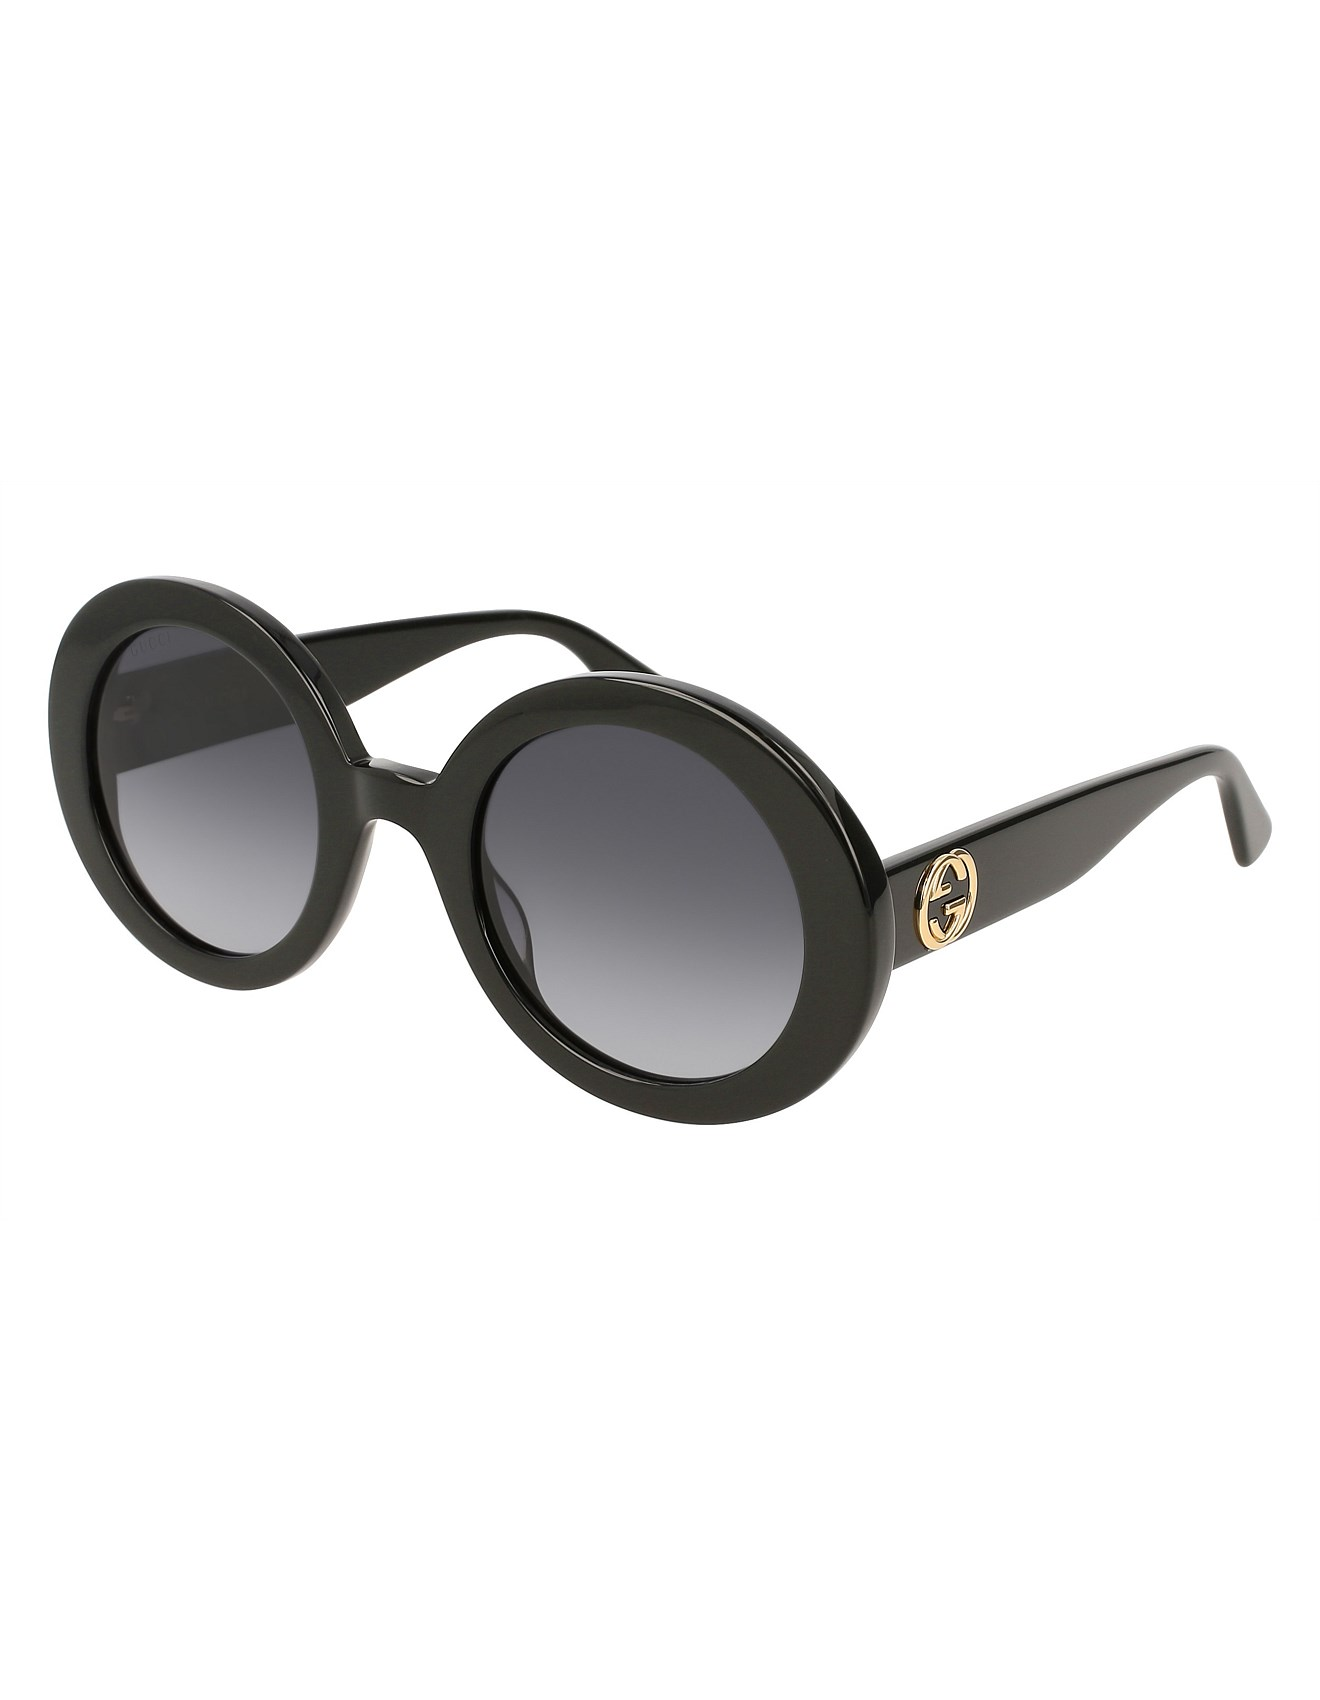 6785f0732e9 Women s Round Sunglasses